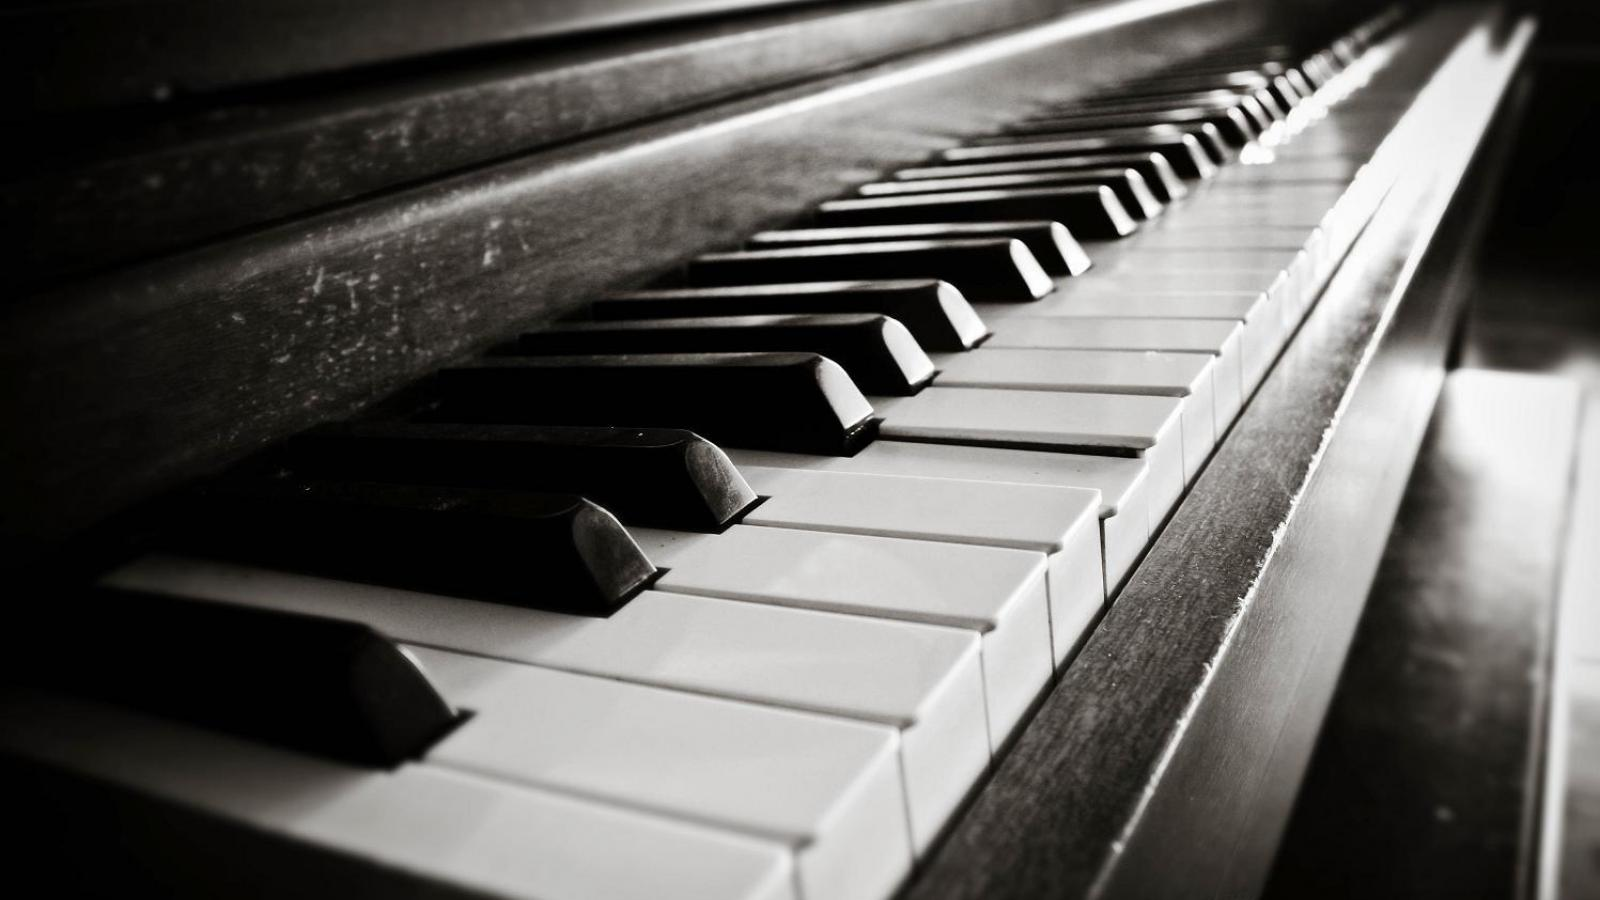 piano wallpaper ndash free - photo #3